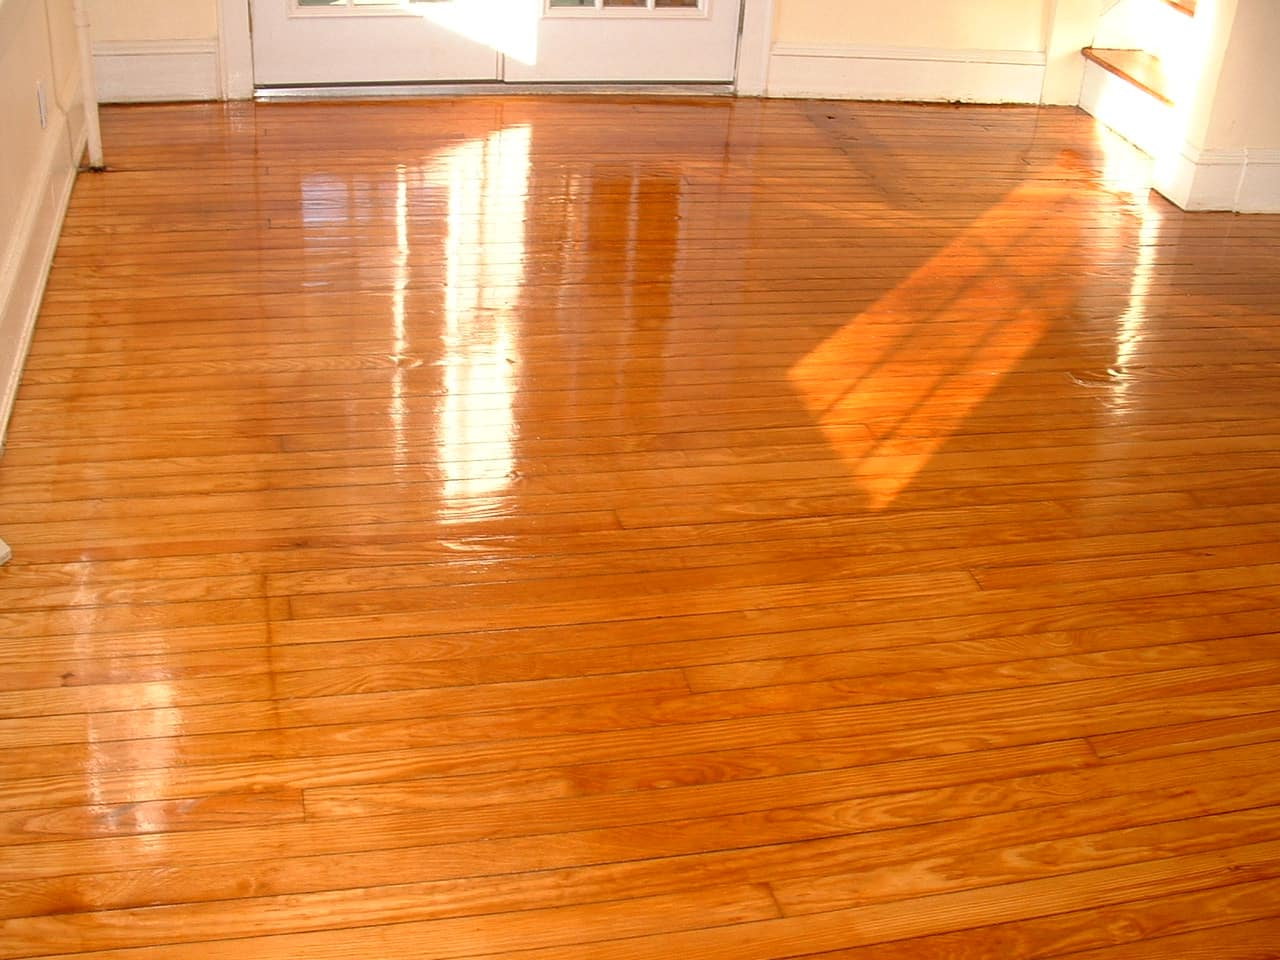 Refinish hardwood floors cost refinish hardwood floors nj for Floors floors floors nj